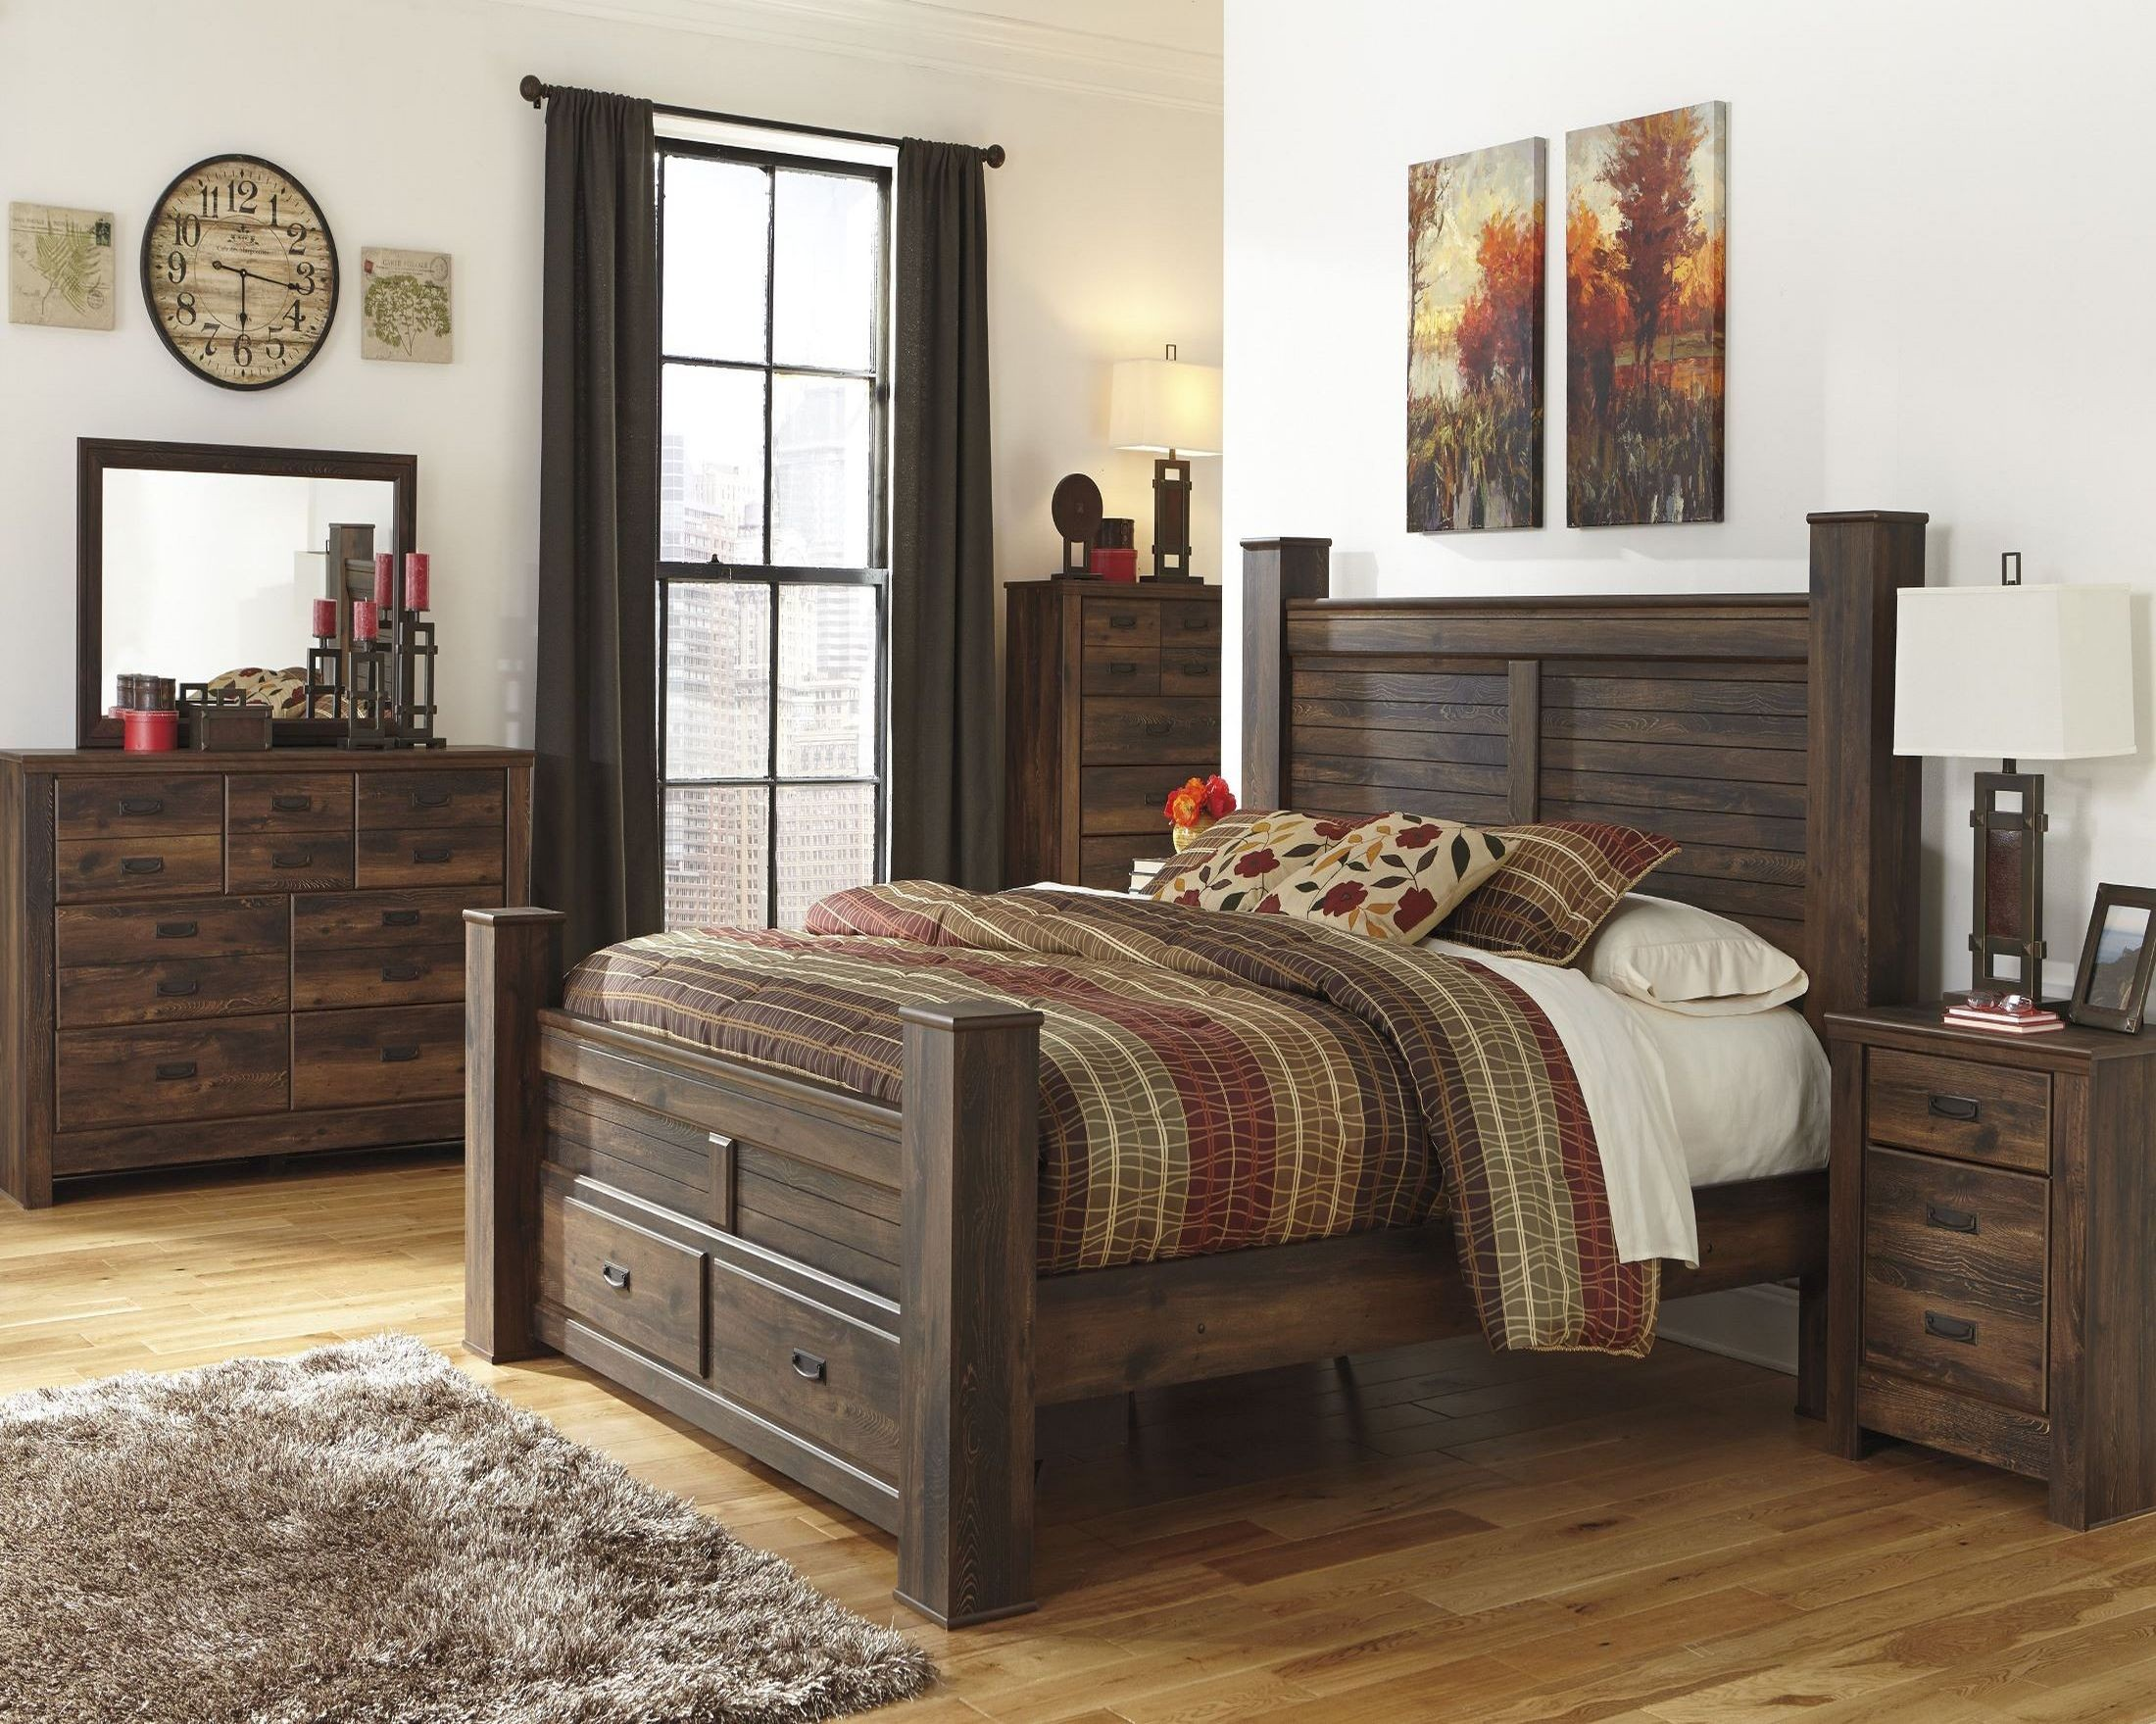 Quinden Poster Storage Bedroom Set From Ashley (B246-61